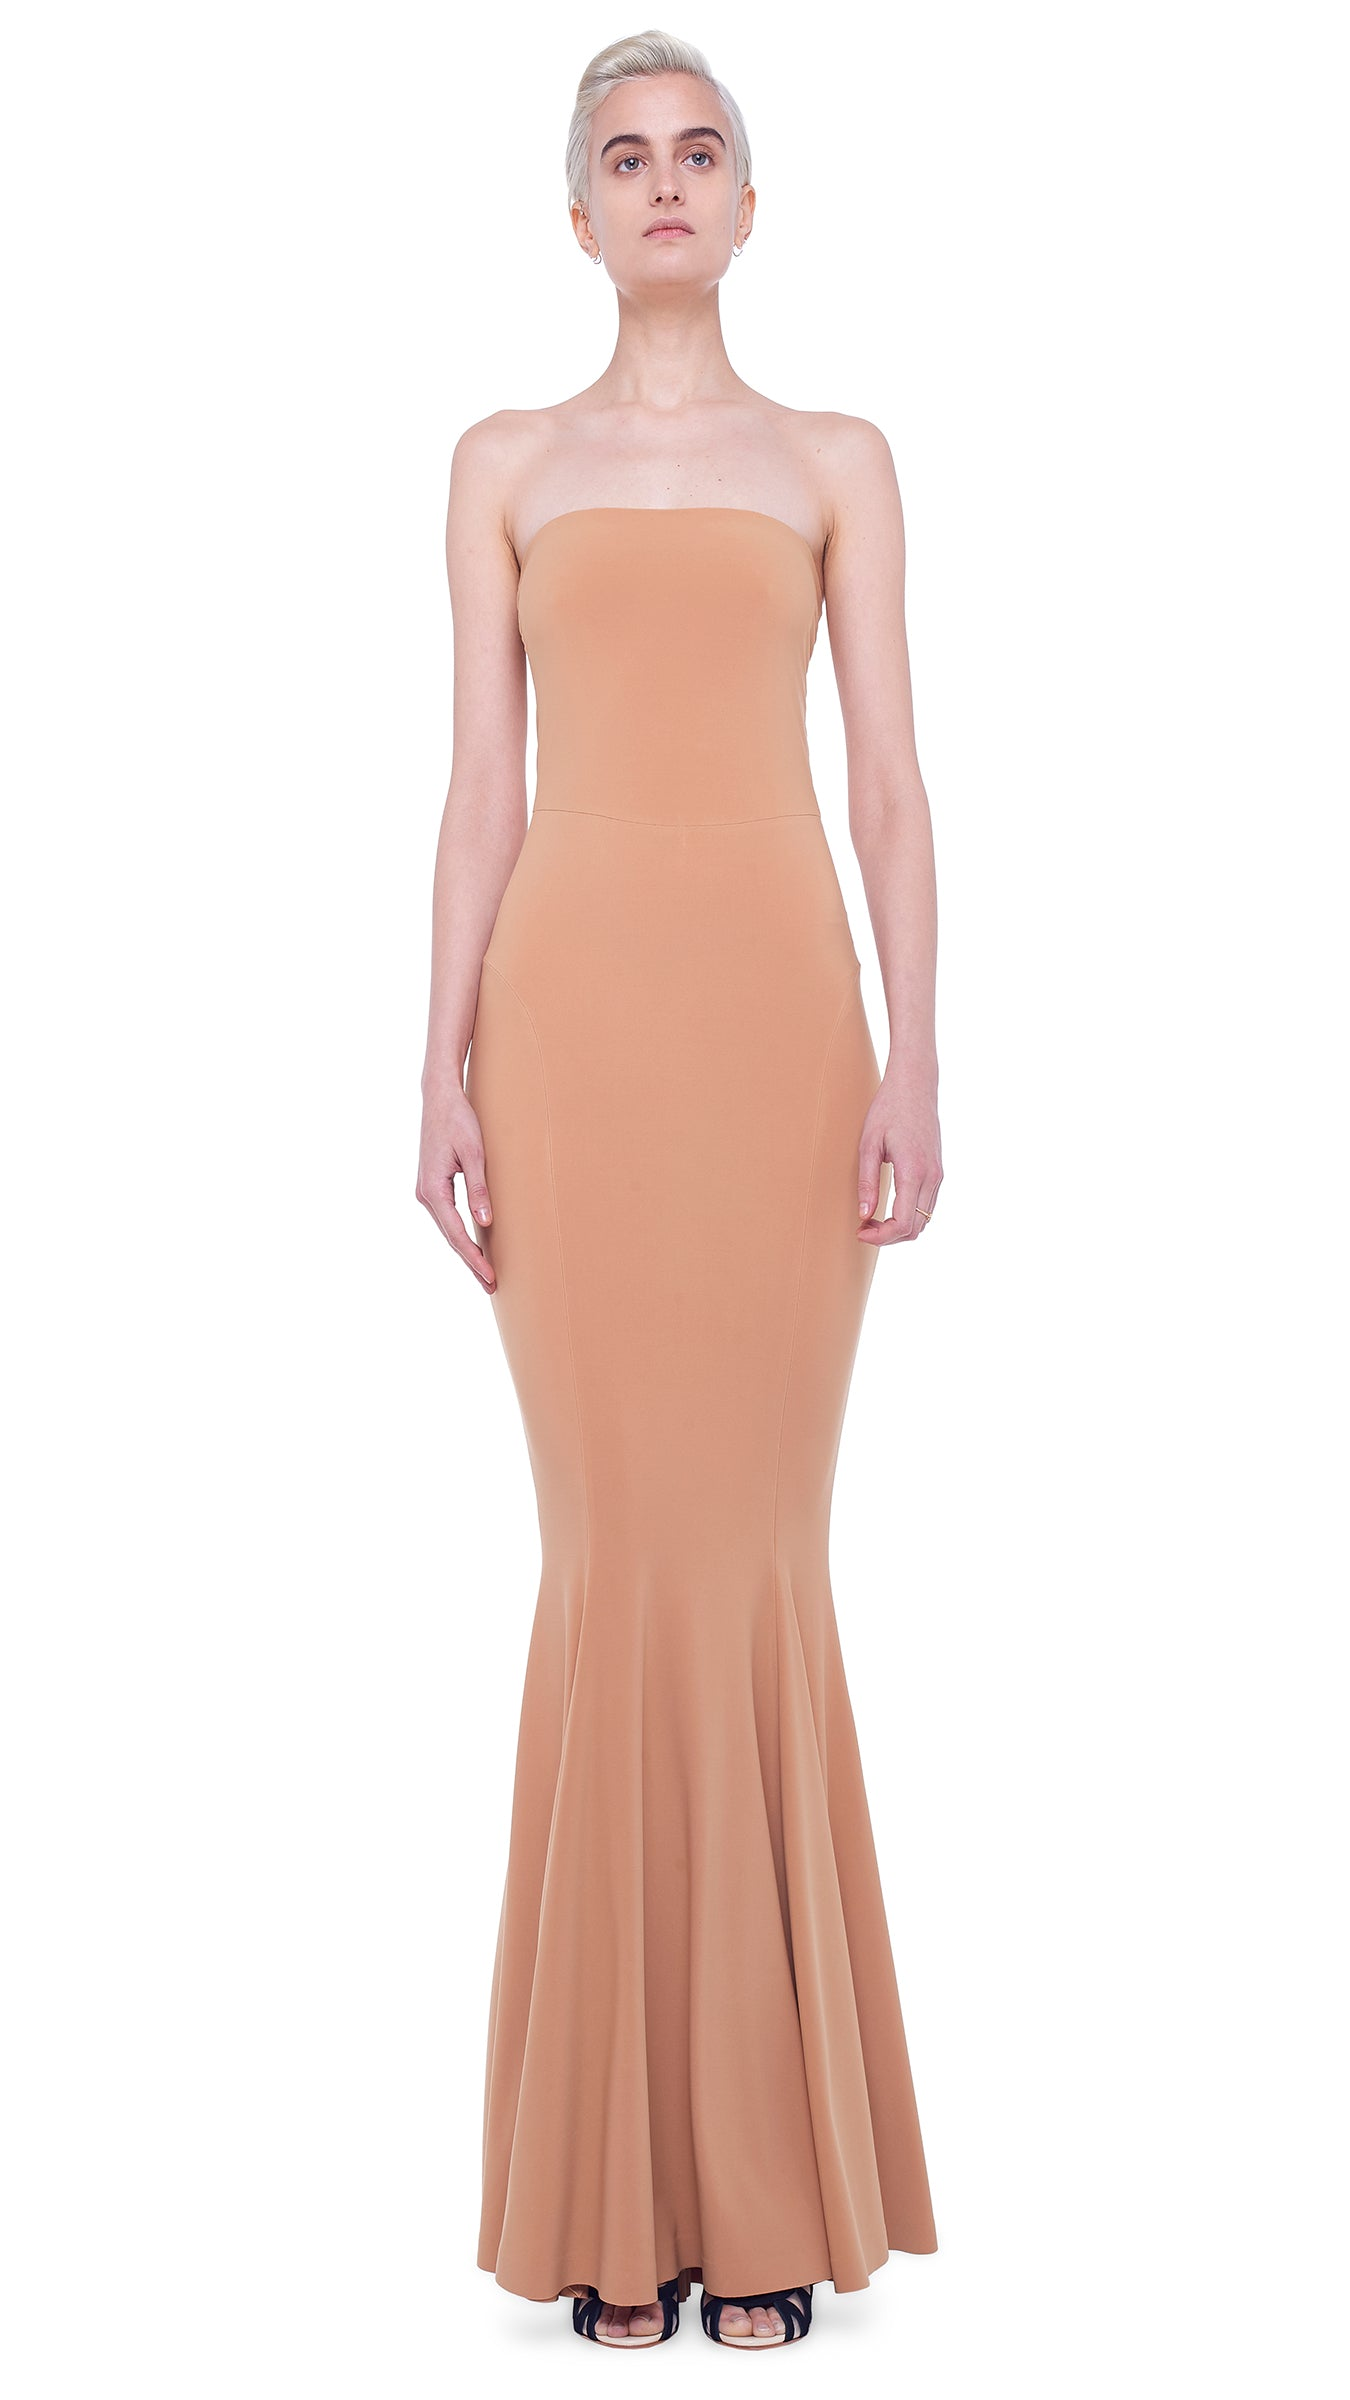 STRAPLESS FISHTAIL GOWN - 1